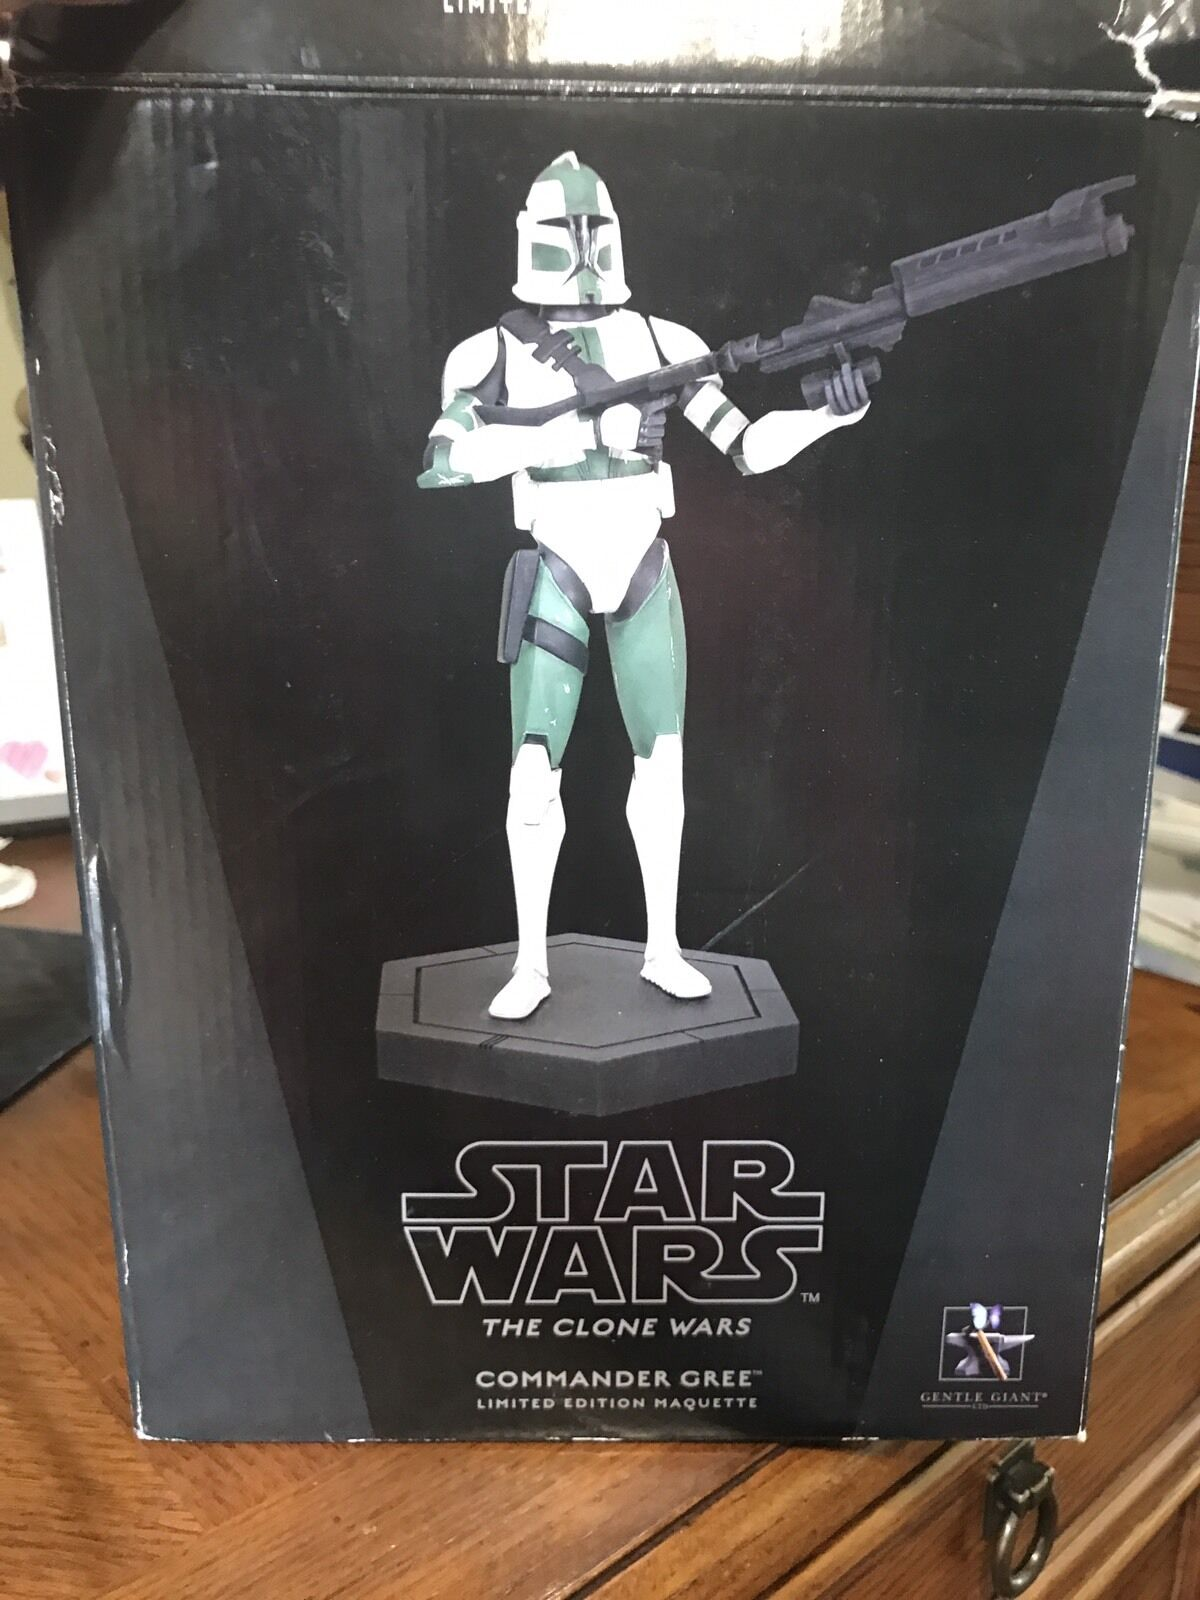 Gentle Giants Star Wars The Clone Wars Limited Edition Maquette Commander Gree